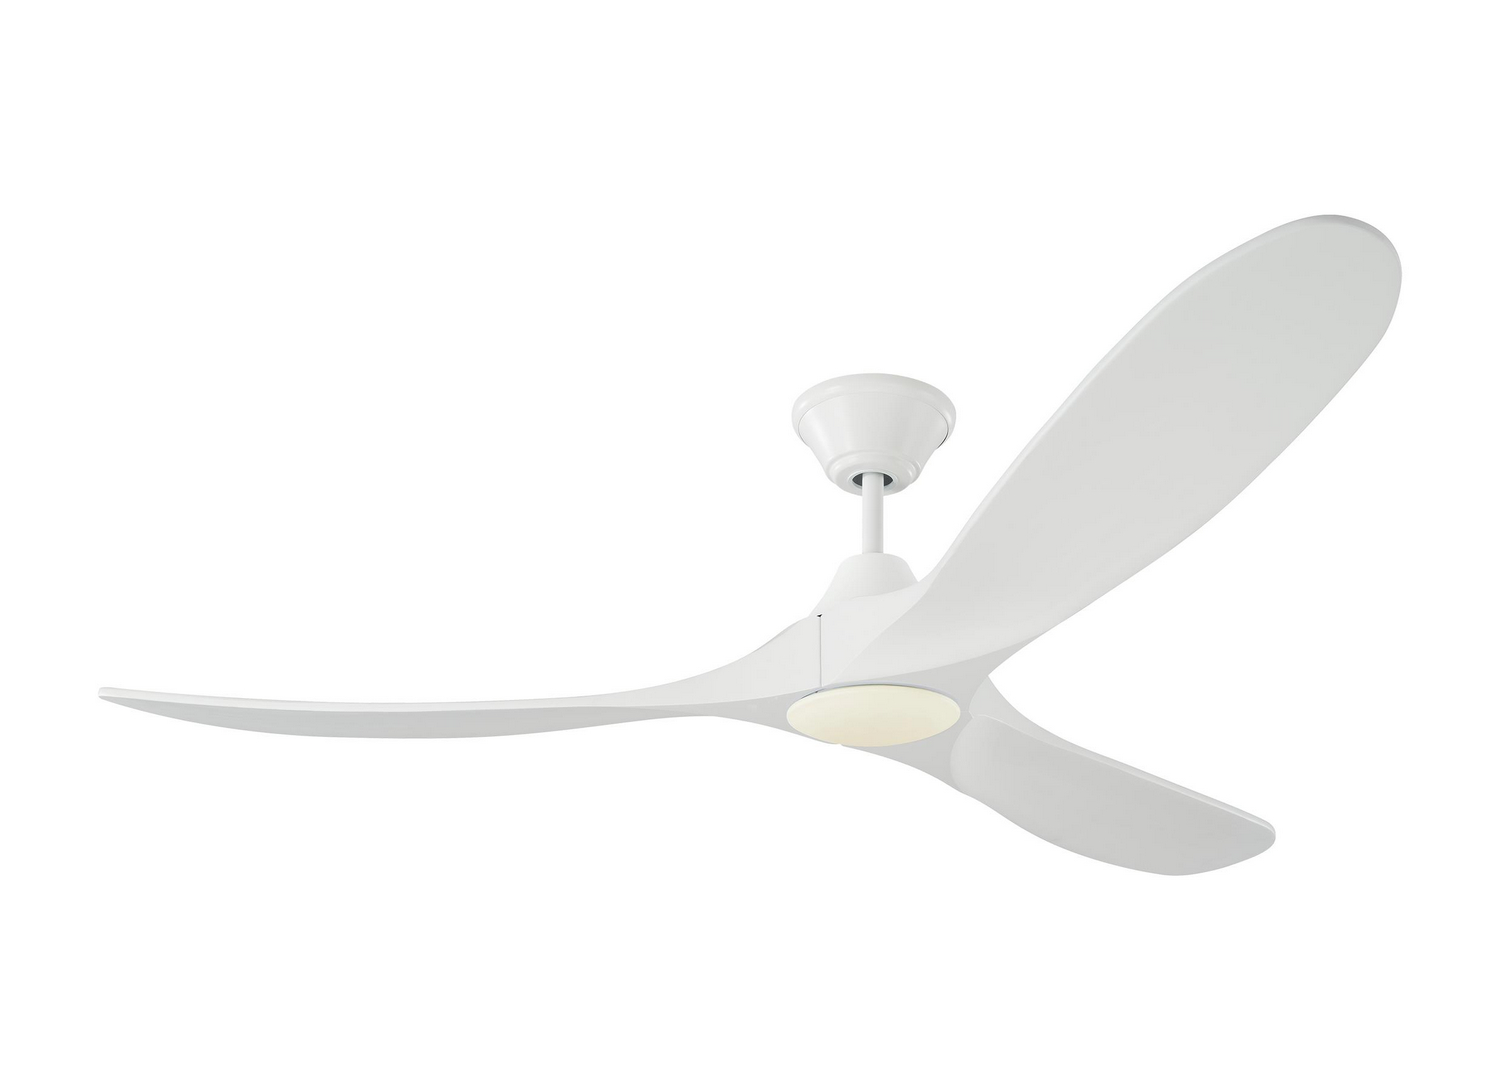 60 inchCeiling Fan from the Maverick LED collection by Monte Carlo 3MAVR60RZWD